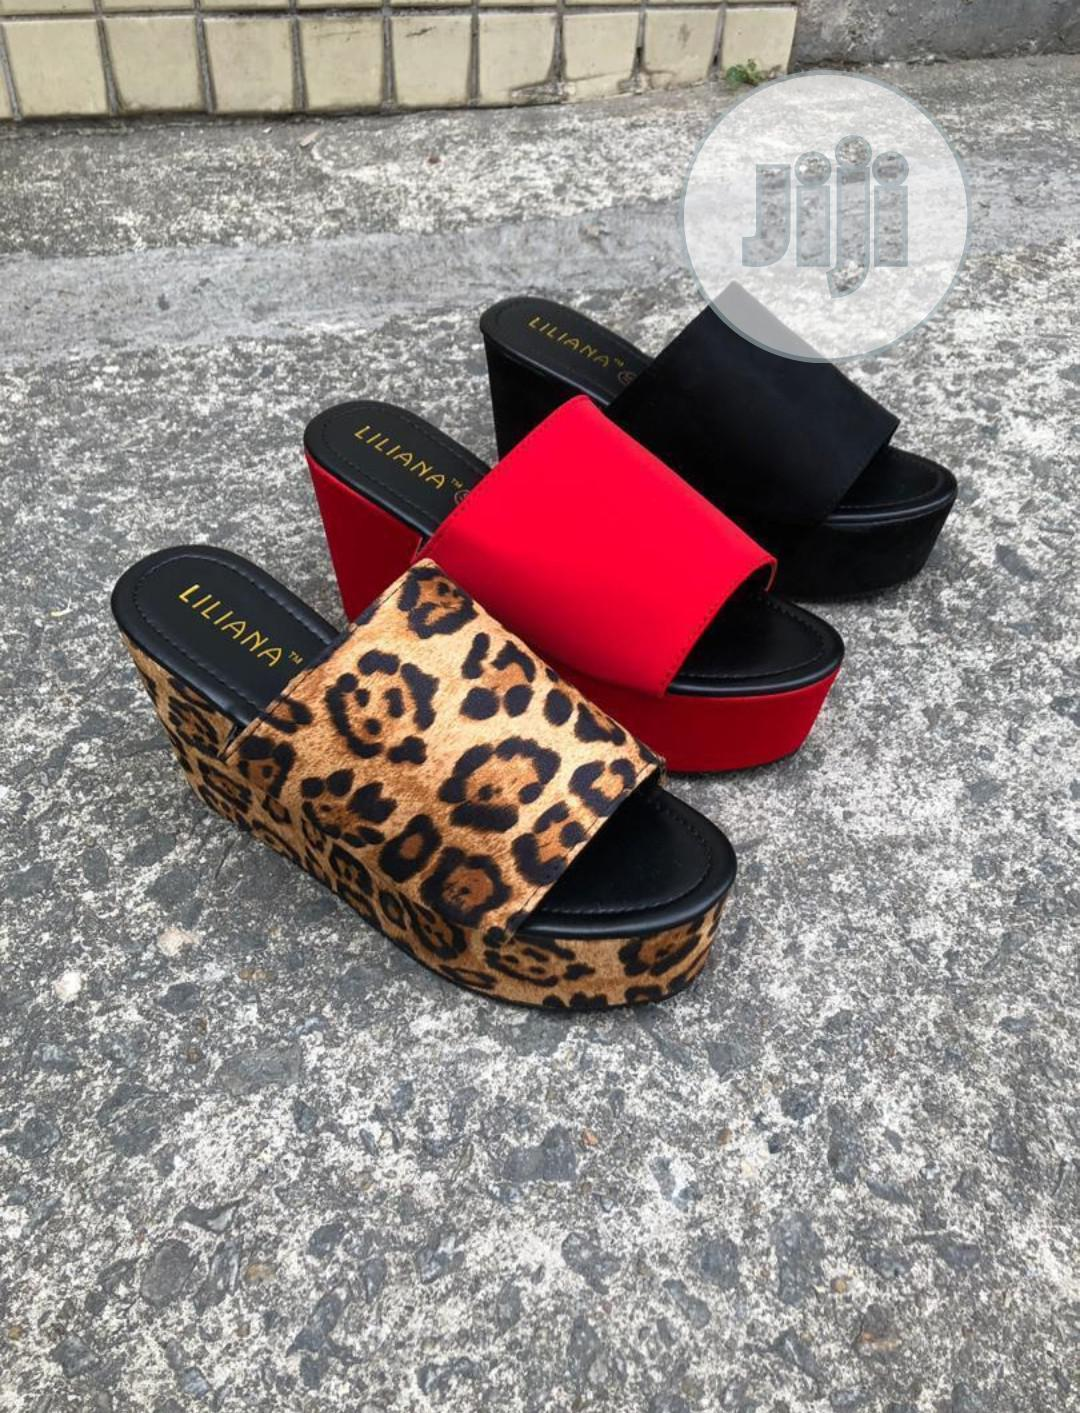 Women's Casual Leopard Muffin Sandals Slippers | Shoes for sale in Surulere, Lagos State, Nigeria